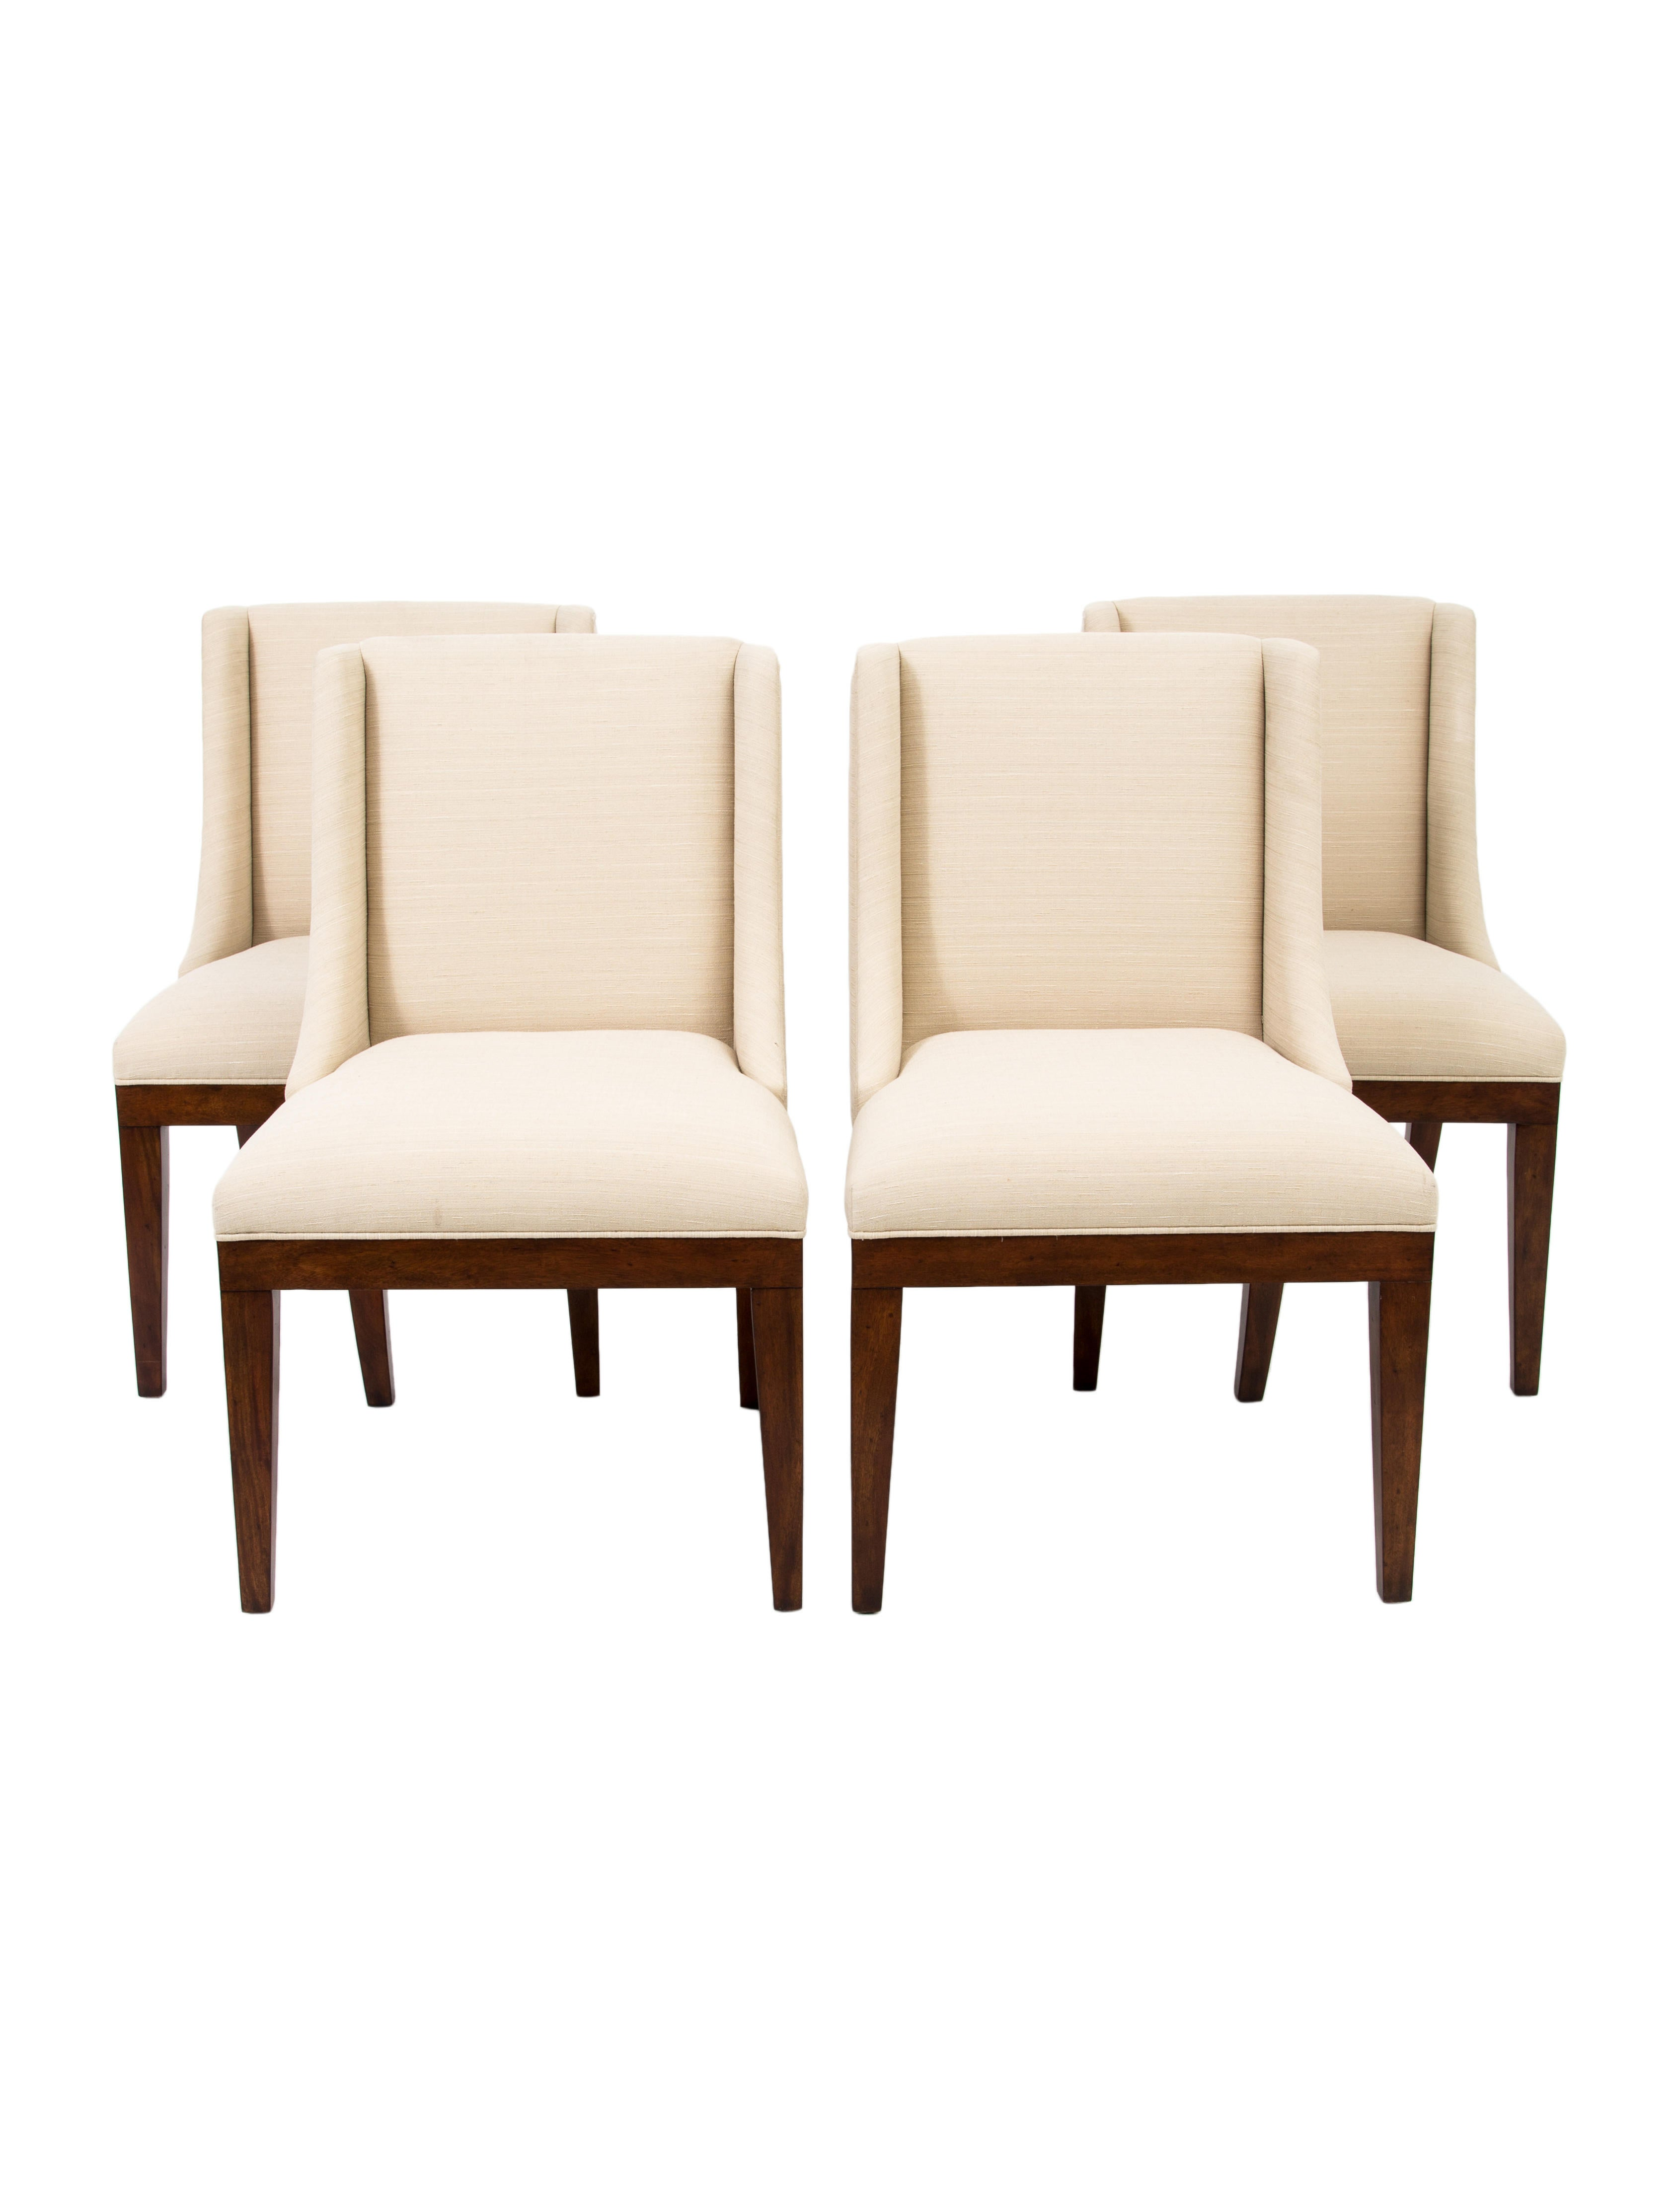 theodore alexander scoop this up dining chairs furniture